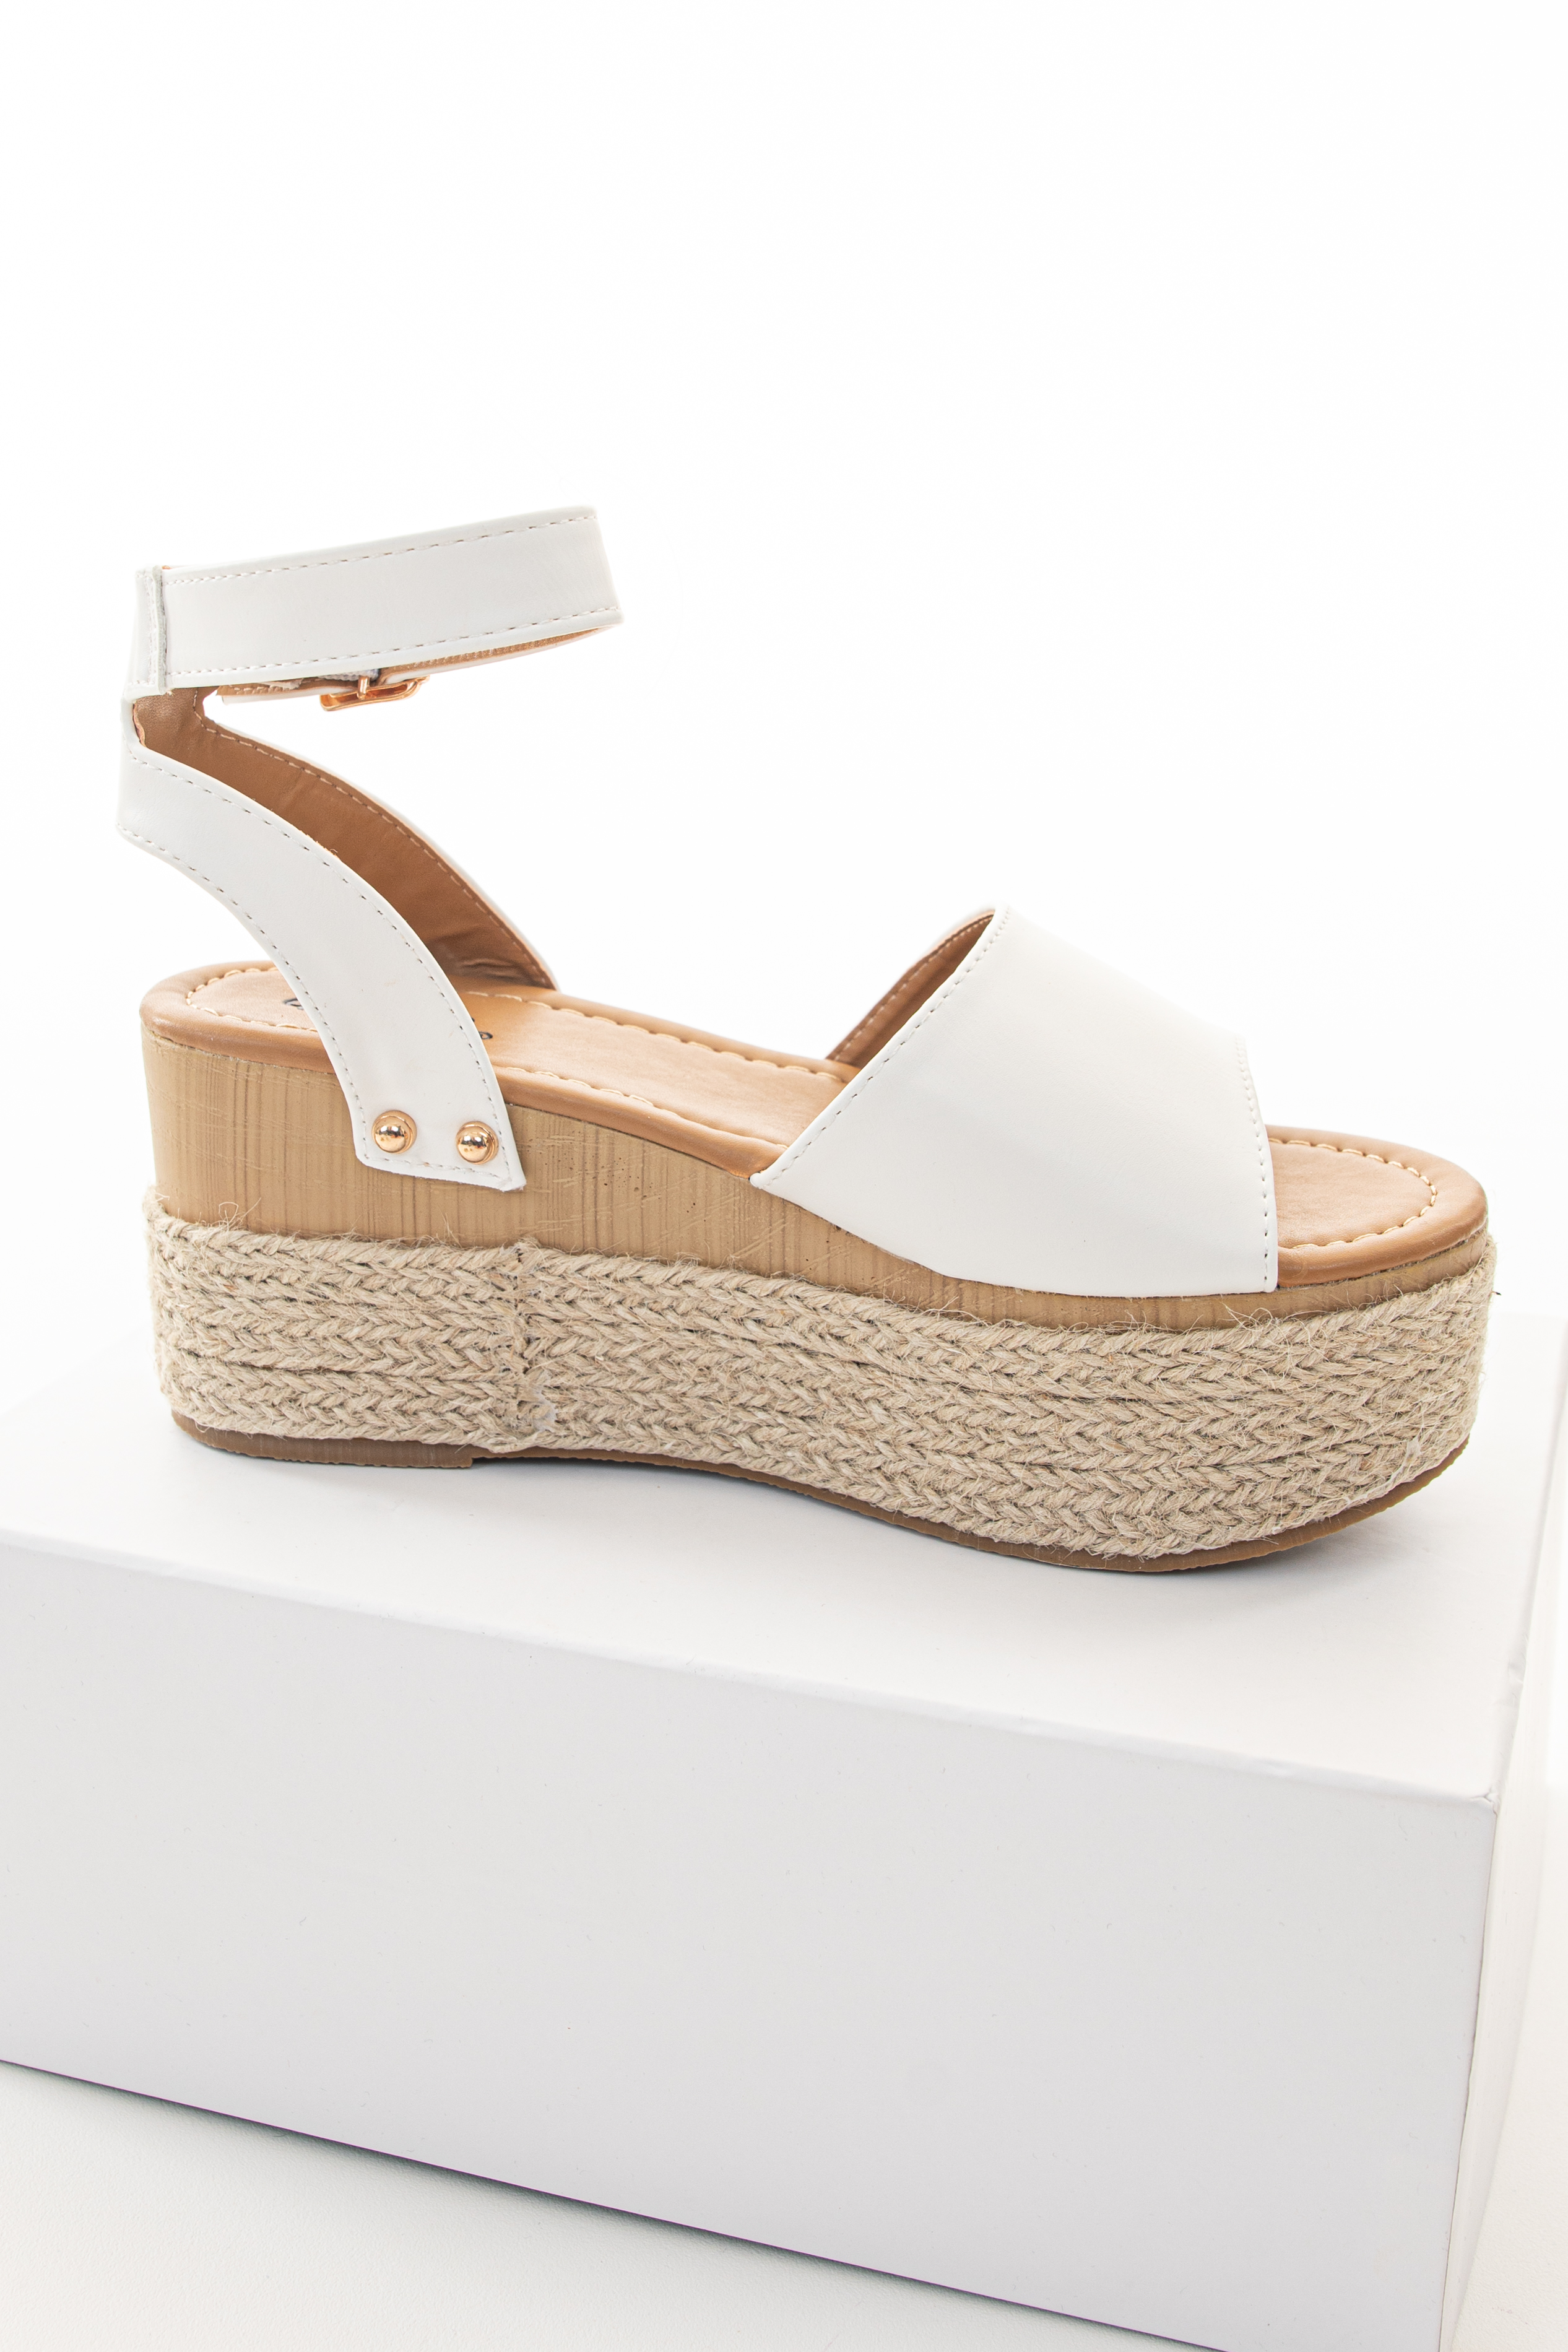 White and Tan Espadrille Sandals with Gold Stud Details